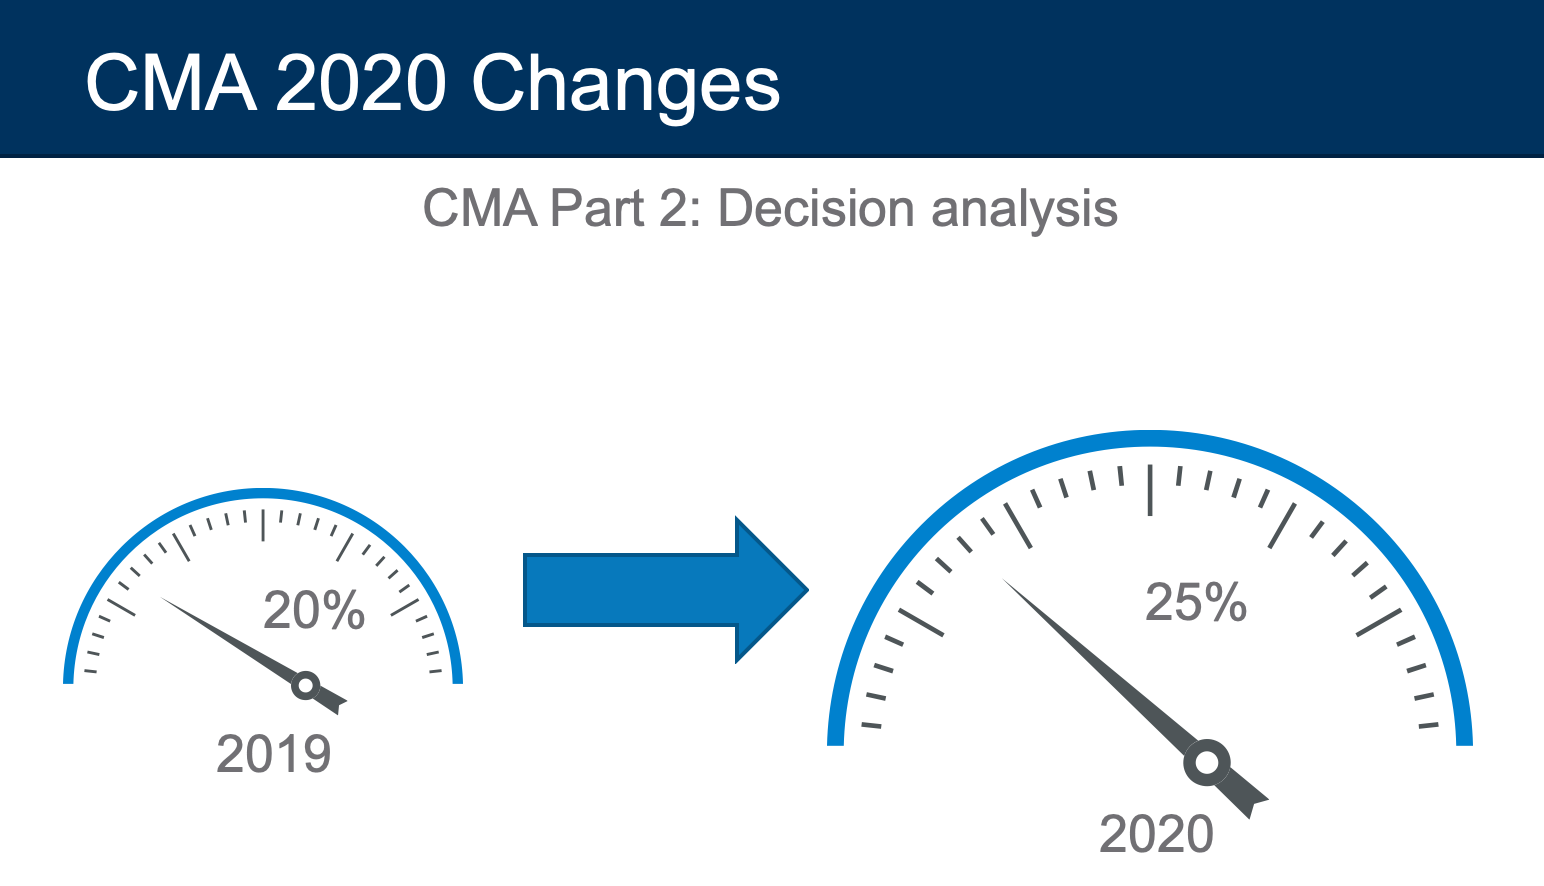 cma exam 2020 changes decision analysis